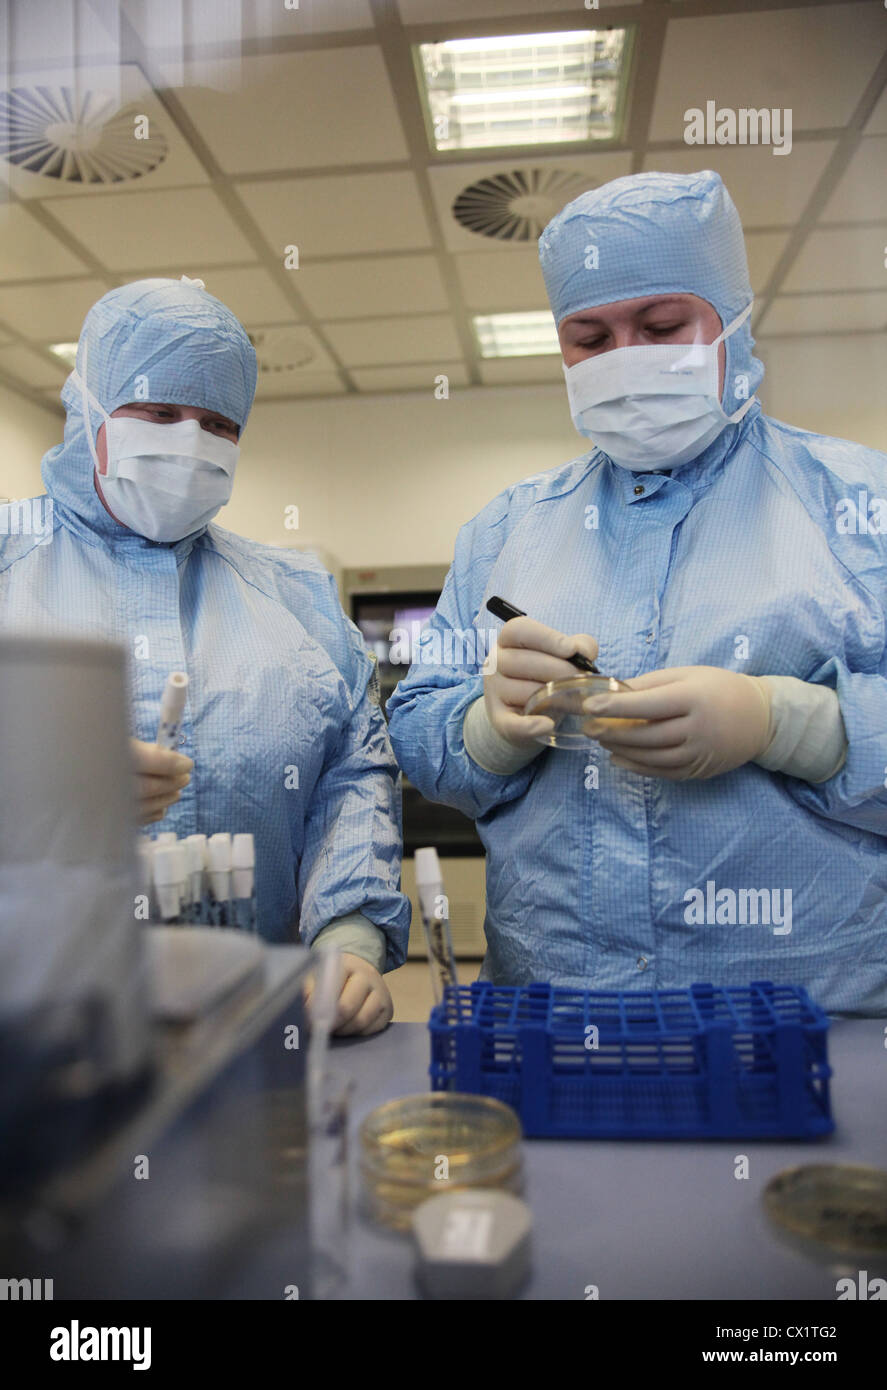 ITAR-TASS: ORYOL REGION, RUSSIA. MAY 24, 2011. Lab workers at a ZAO Sanofi Aventis Vostok plant, formerly known - Stock Image